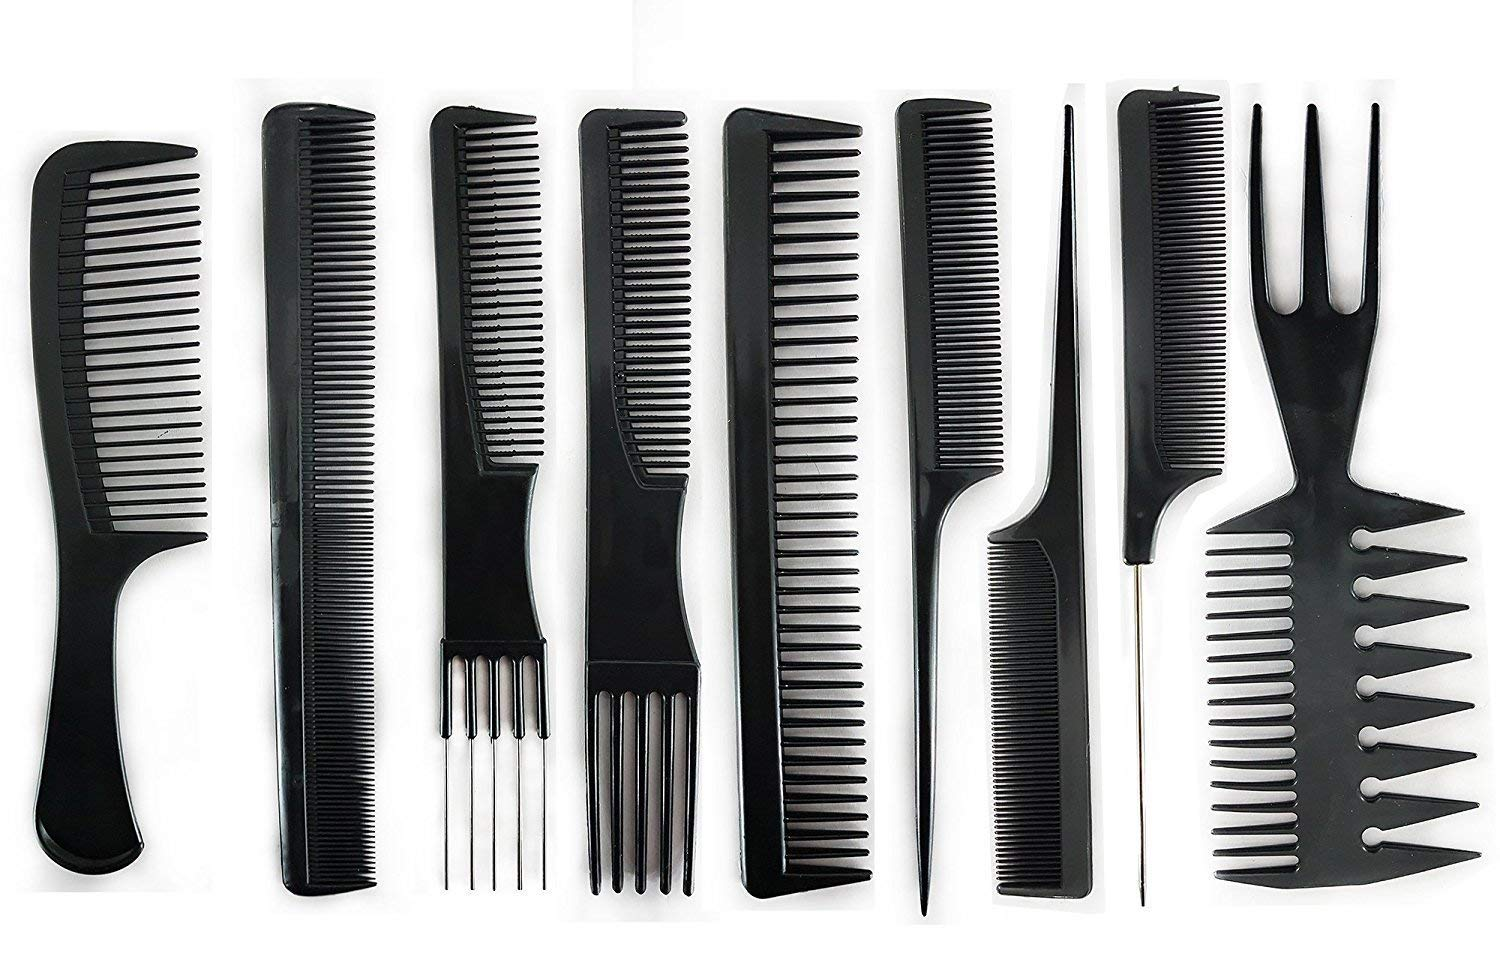 Buy Prime 9 Pcs Comb Set Of Hair Style Comb For Women, Comb For Men, Comb For Hair Style, Black, 30 Gram, Pack Of 1 Online at Low Prices in India - Amazon.in